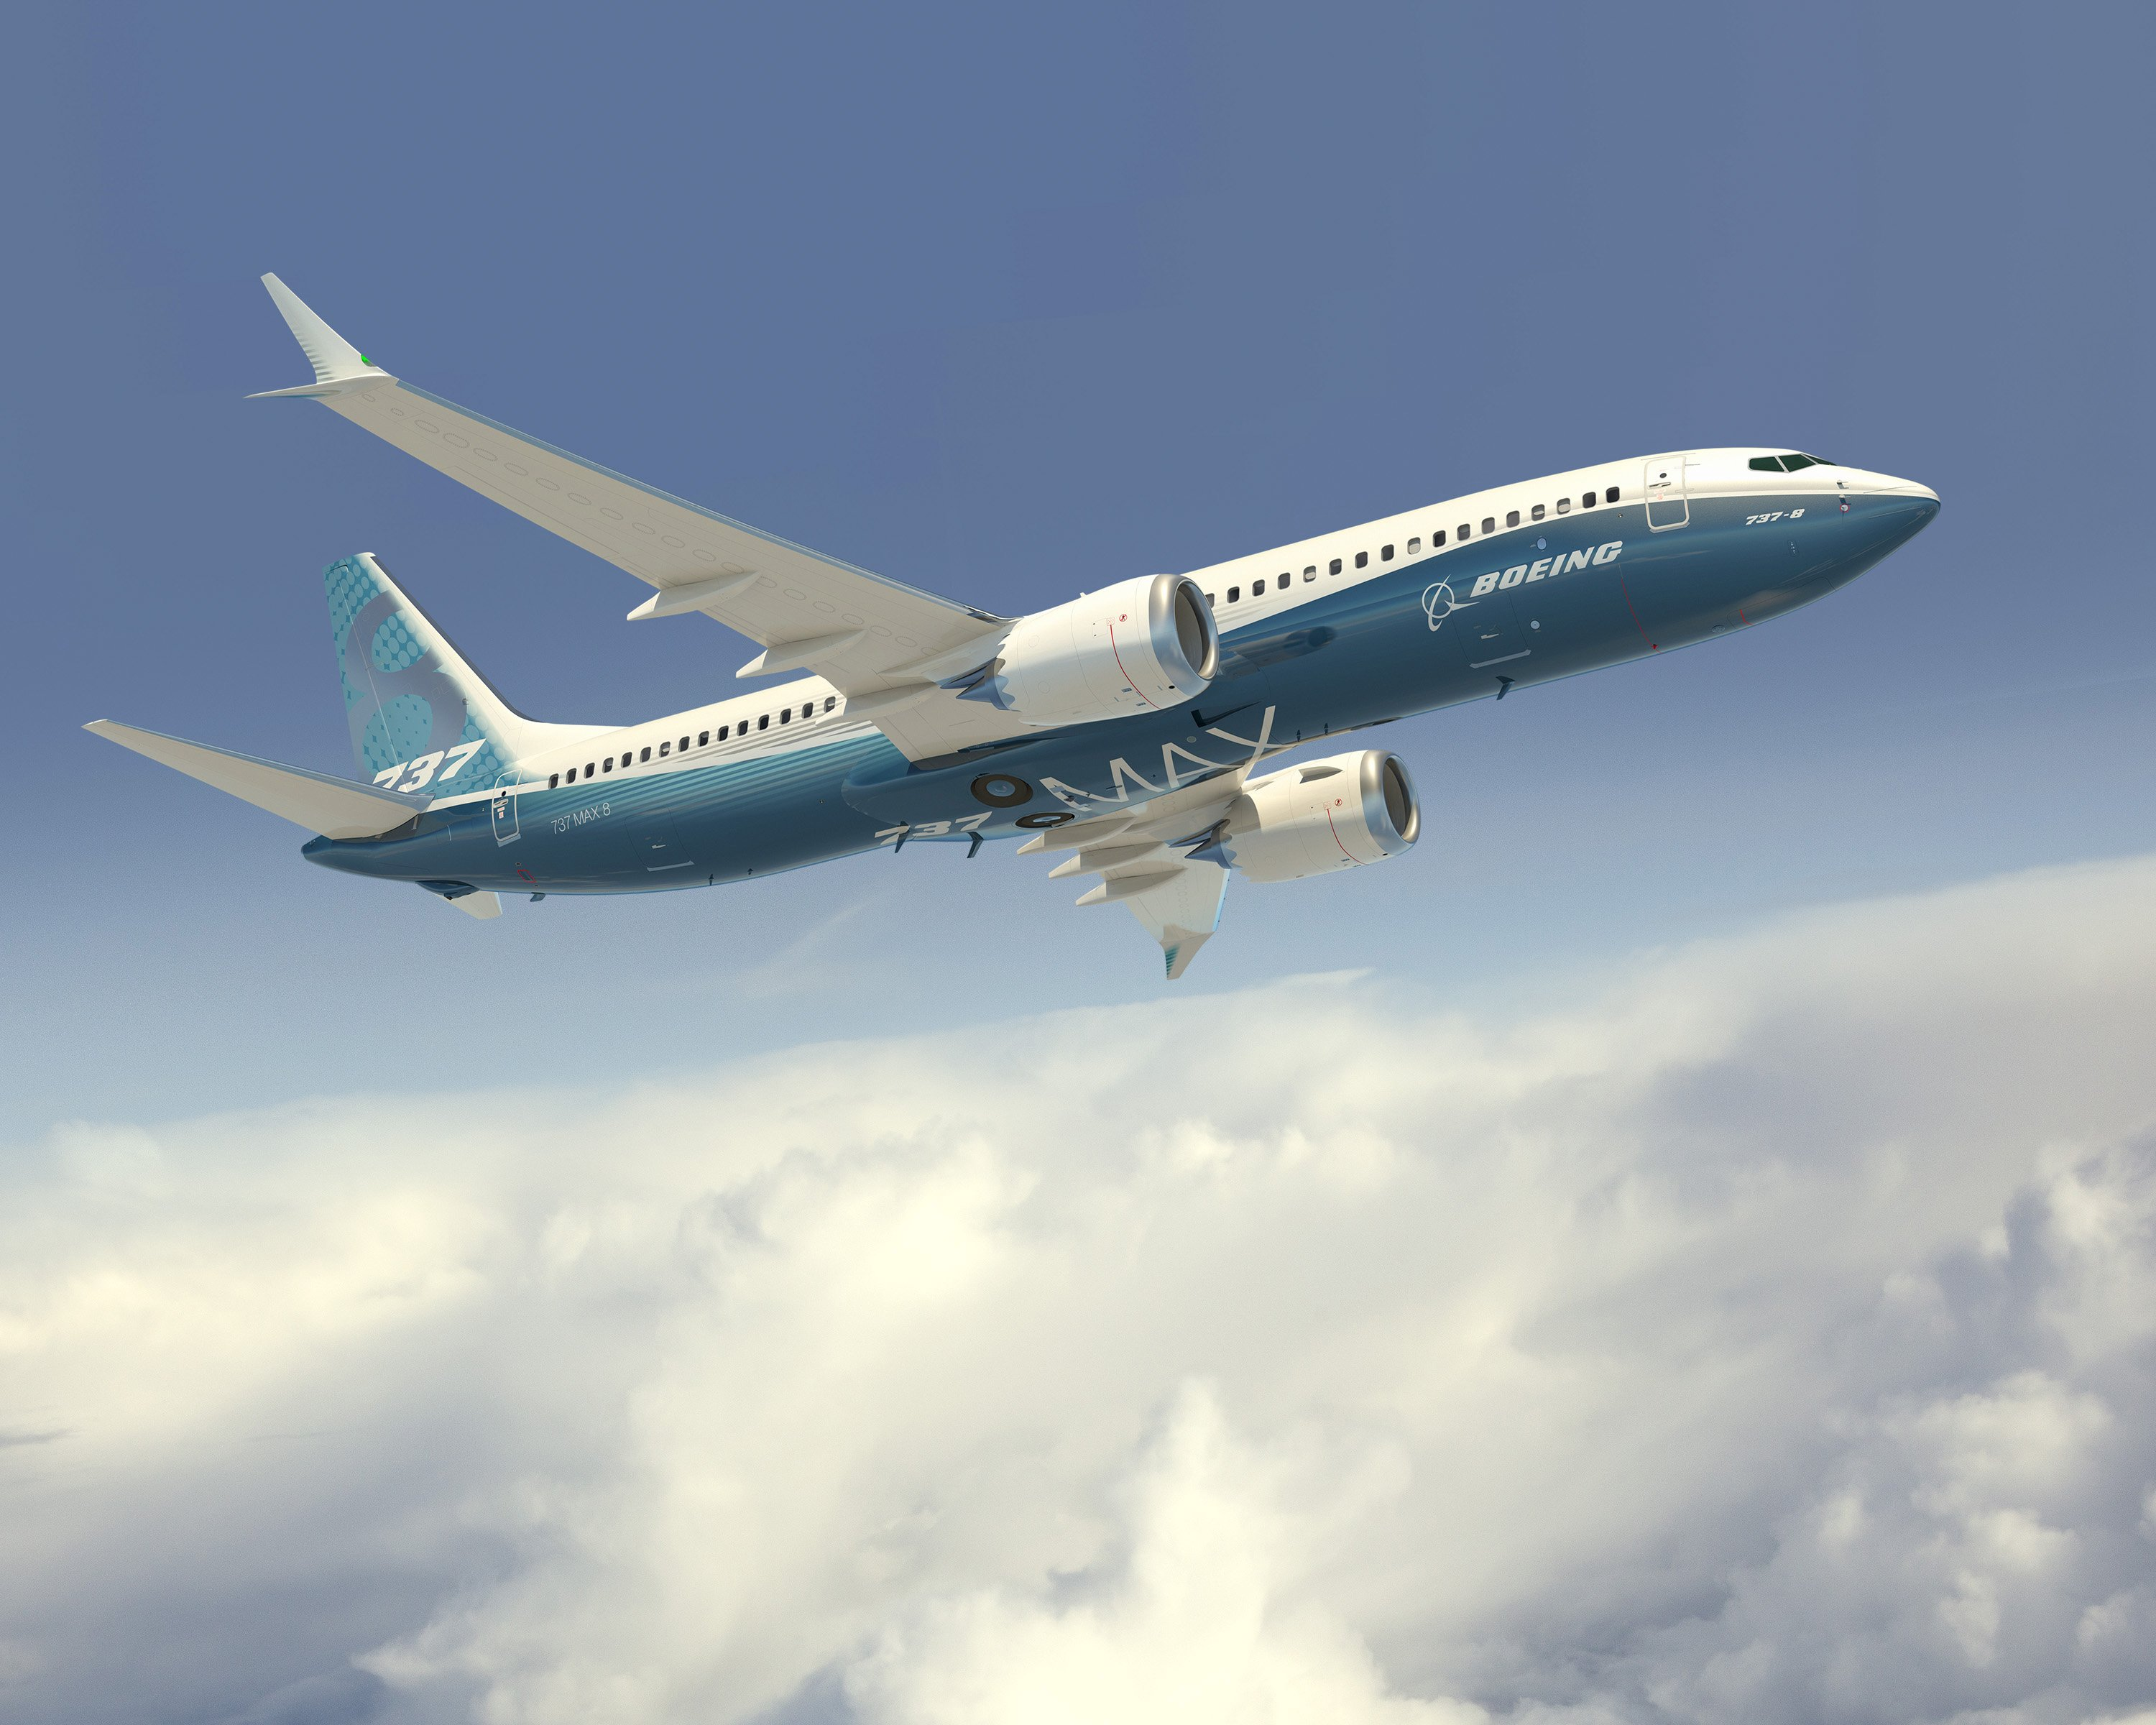 Pilots Not Told About 737 MAX Auto Trim System (Updated)